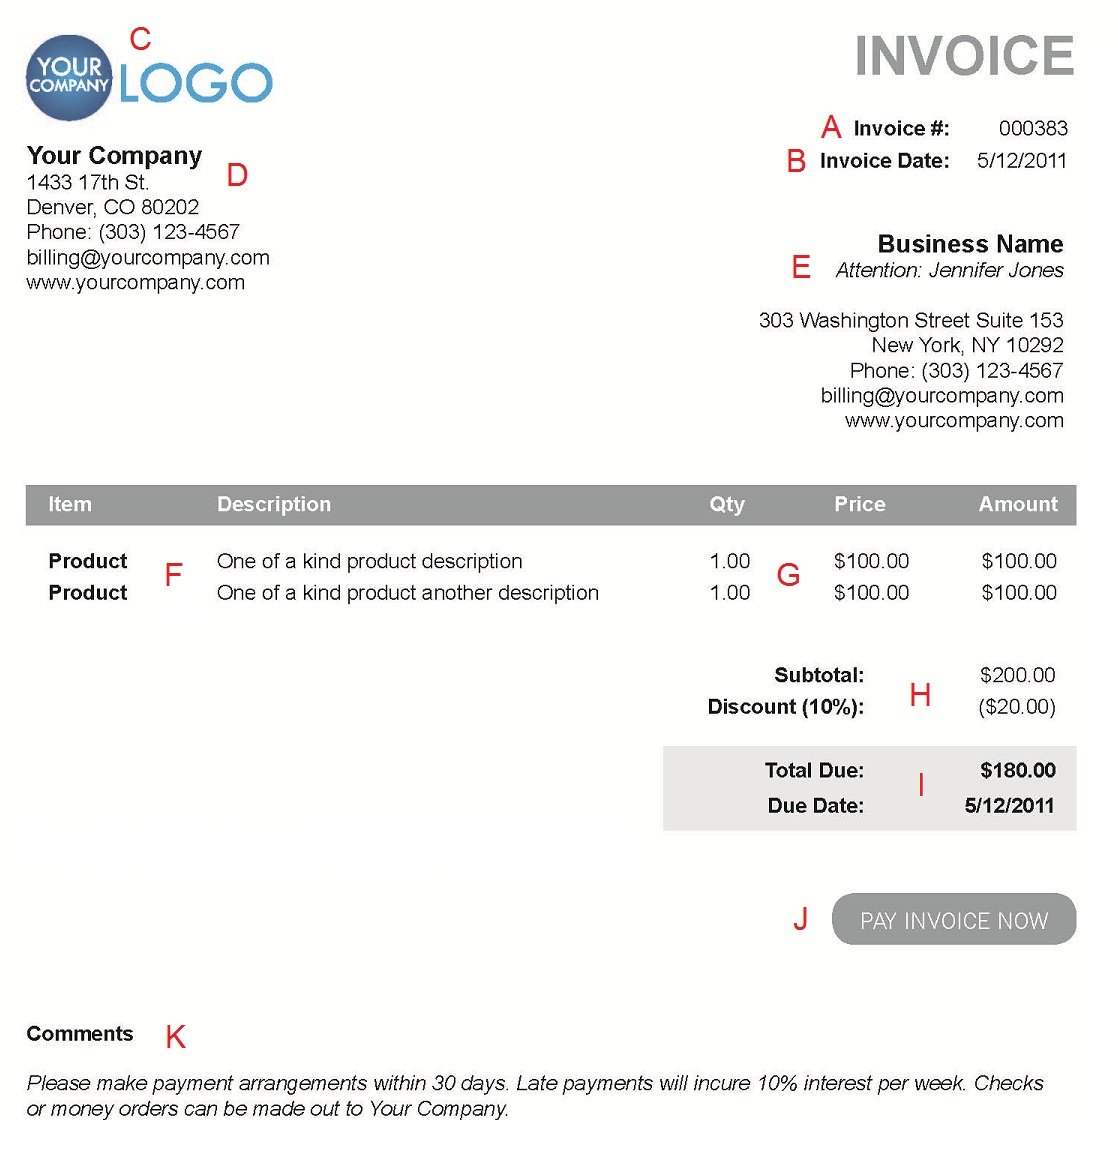 Pigbrotherus  Personable The  Different Sections Of An Electronic Payment Invoice With Heavenly A  With Cool Scheduling And Invoicing Software Also Html Invoice Template In Addition Film Invoice Template And Provide Invoice As Well As How To Send Multiple Invoices In Quickbooks Additionally Free Invoice And Receipt Software From Paysimplecom With Pigbrotherus  Heavenly The  Different Sections Of An Electronic Payment Invoice With Cool A  And Personable Scheduling And Invoicing Software Also Html Invoice Template In Addition Film Invoice Template From Paysimplecom